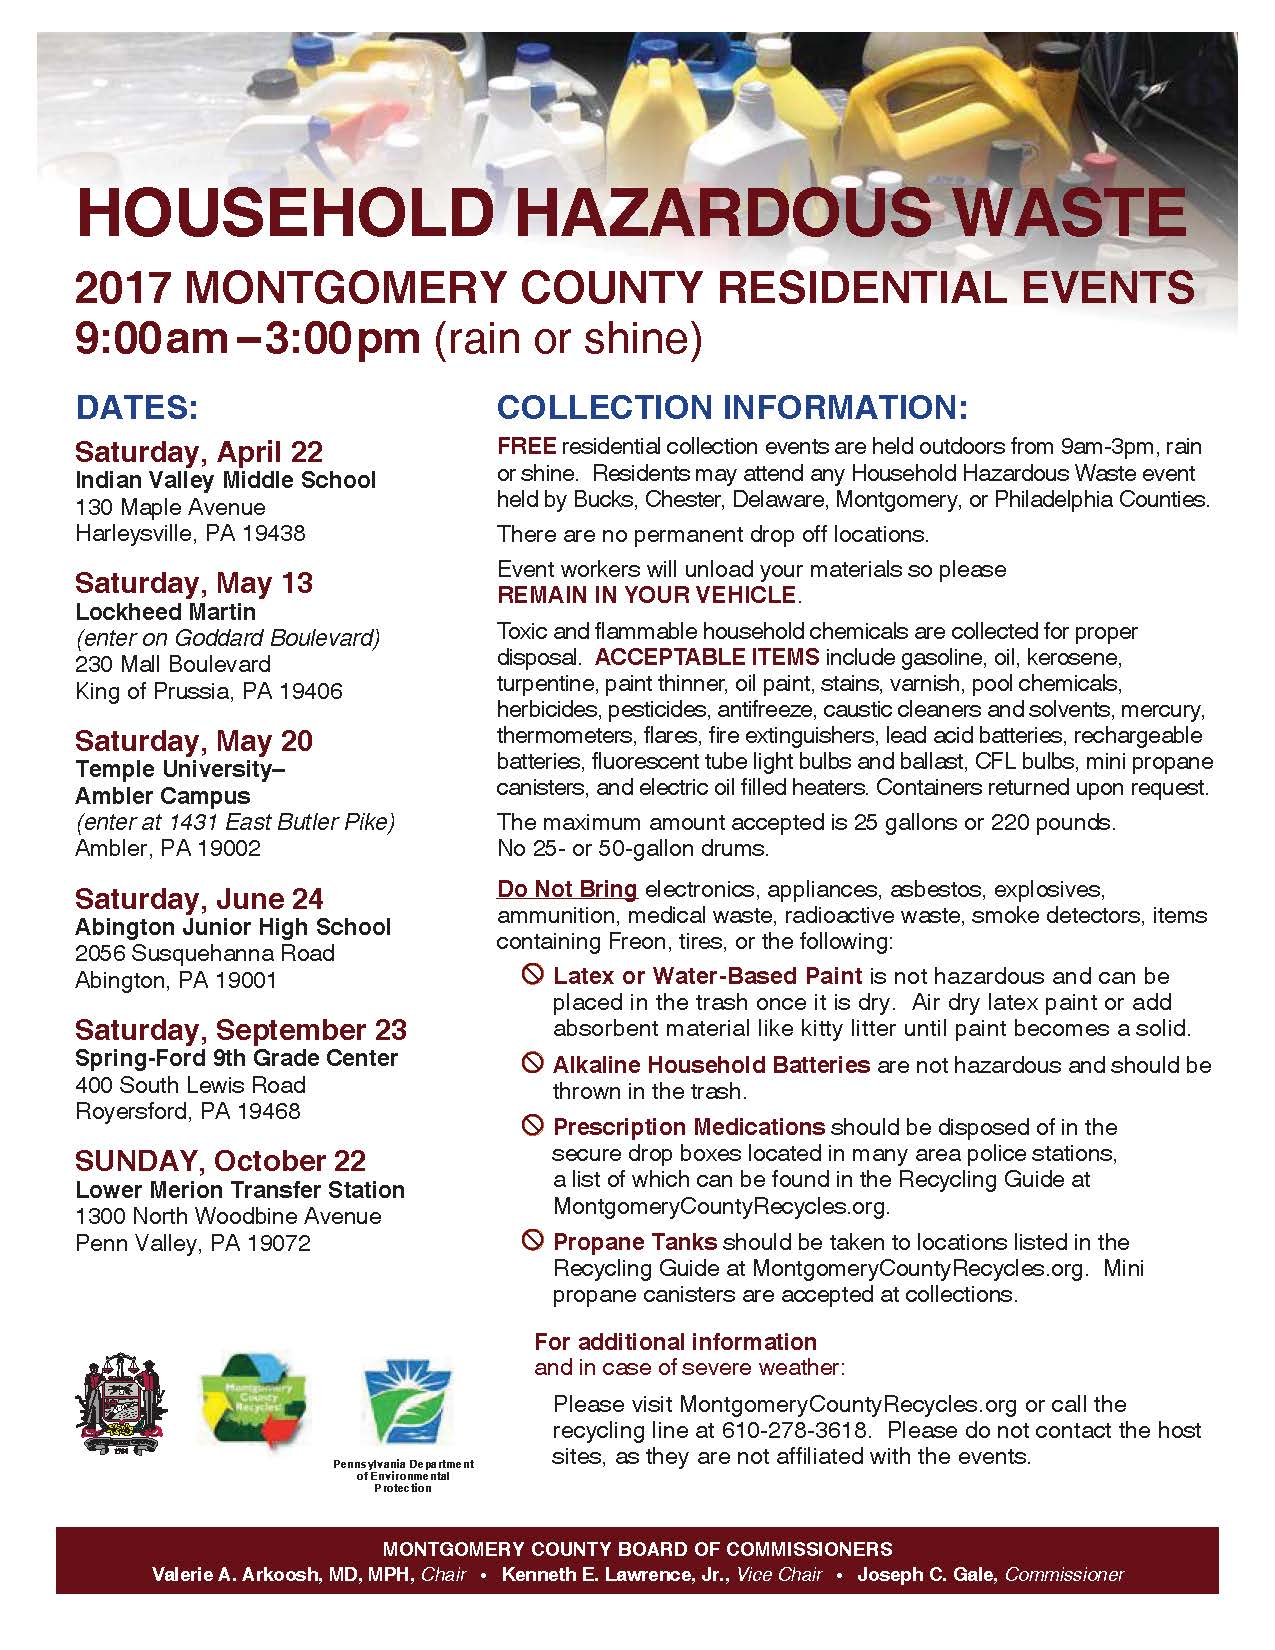 Hazardous Waste Recycling Event